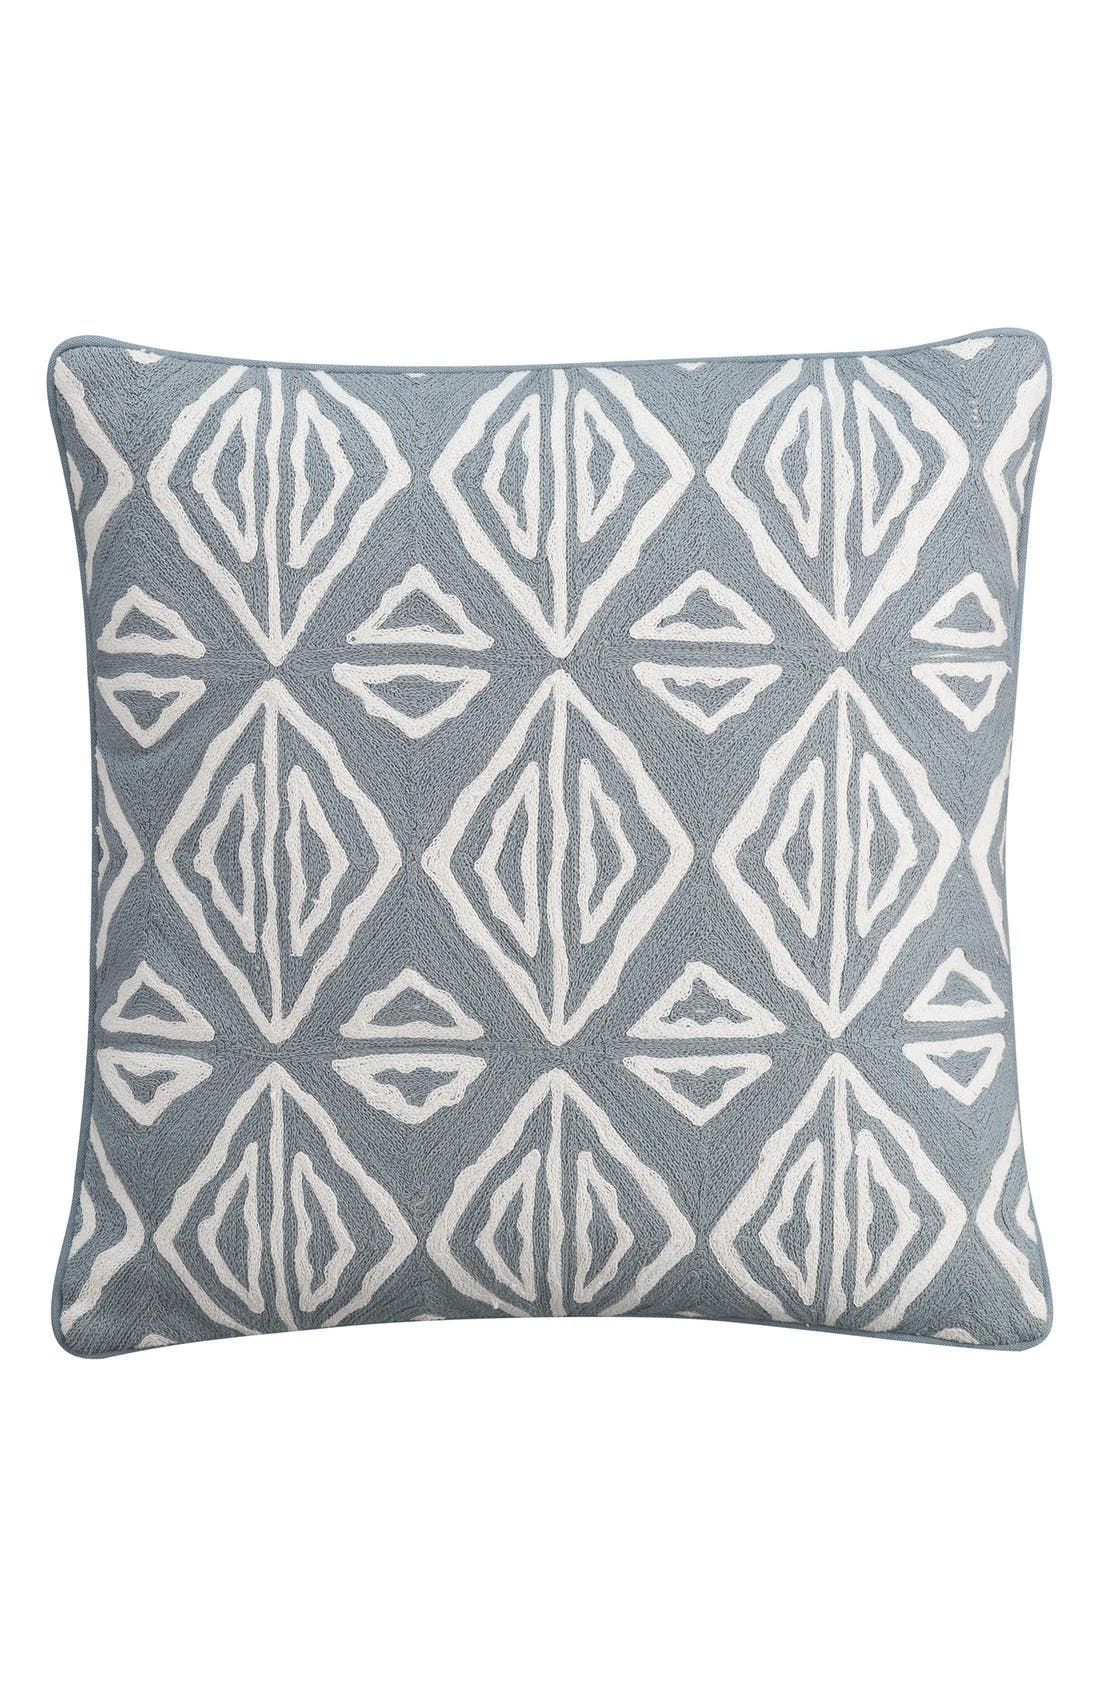 'Moroccan Geo' Crewel Embroidered Pillow,                         Main,                         color, Grey